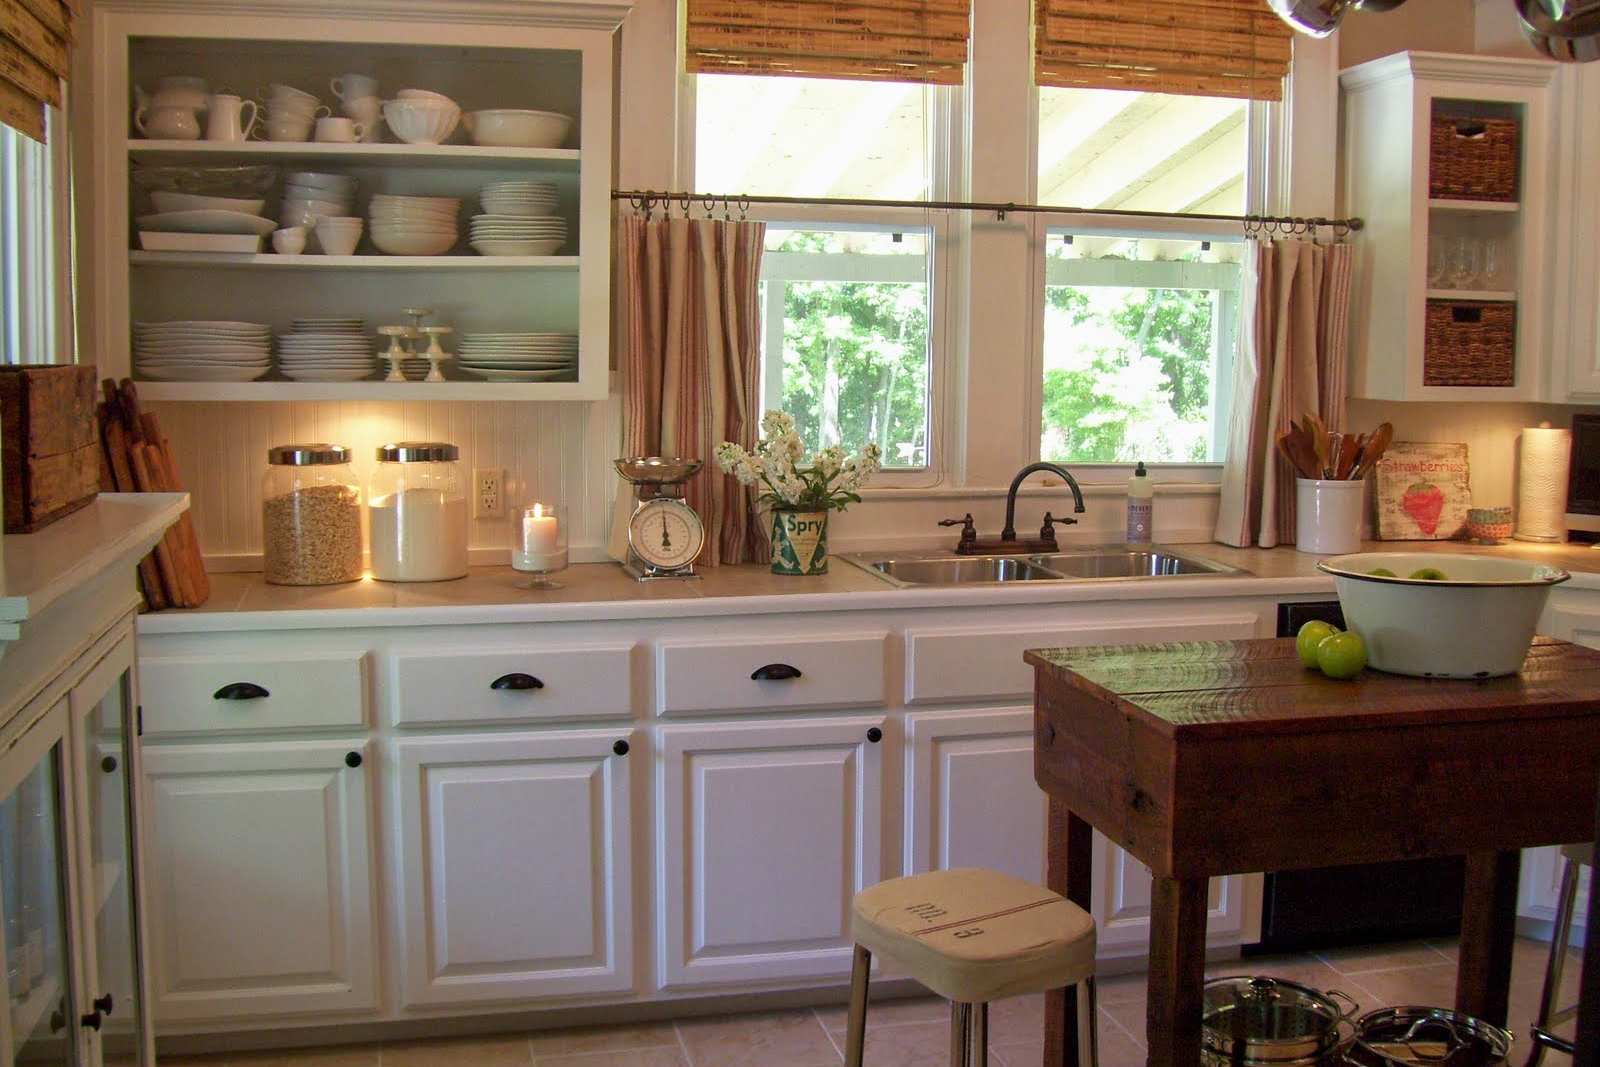 Kitchen Remodeling Ideas On A Budget Beauteous Remodeling A Kitchen  Do It Yourself Kitchen Remodel Design Decoration